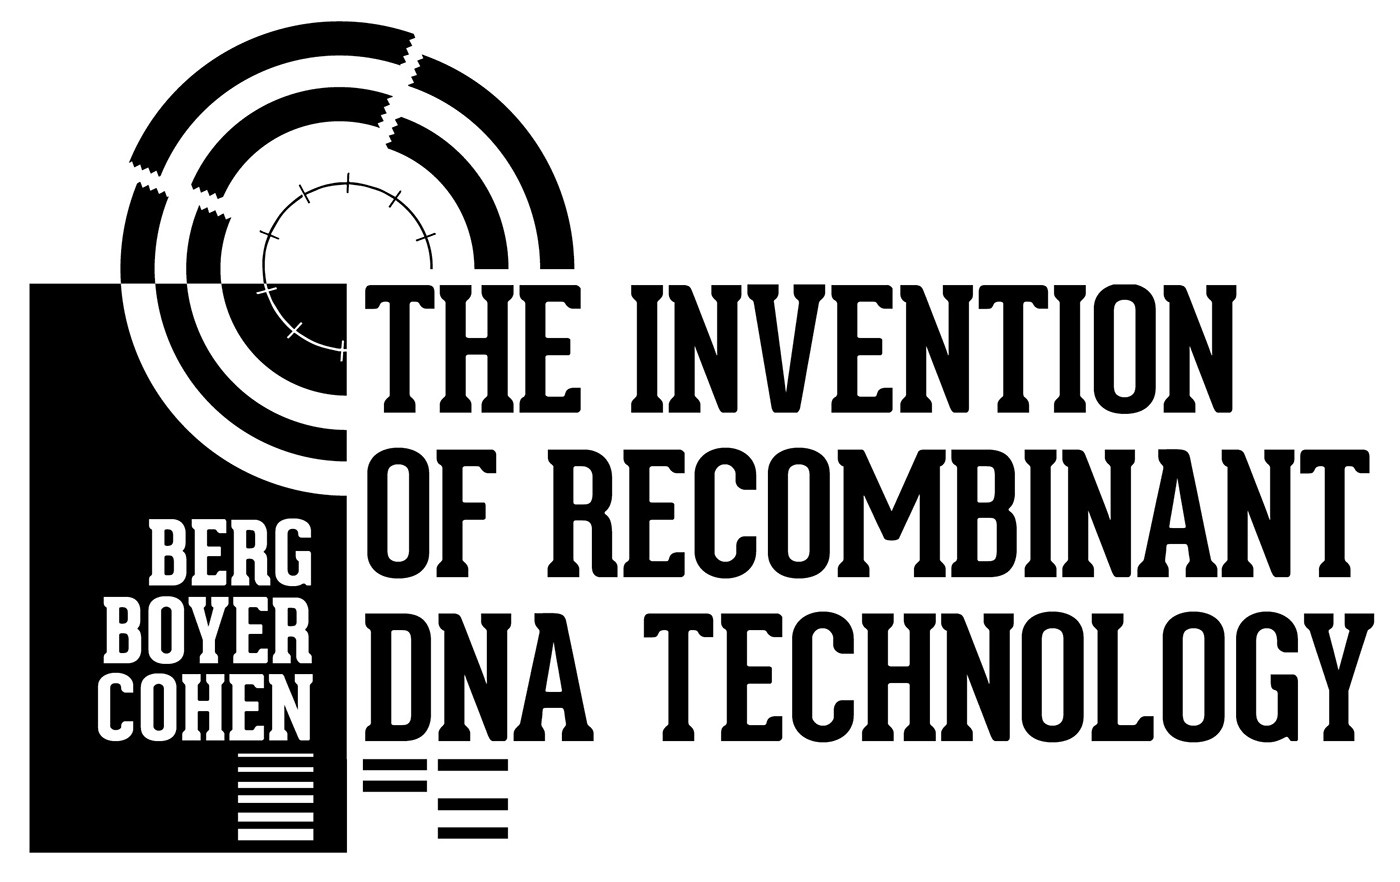 the invention of recombinant dna technology – lsf magazine – medium